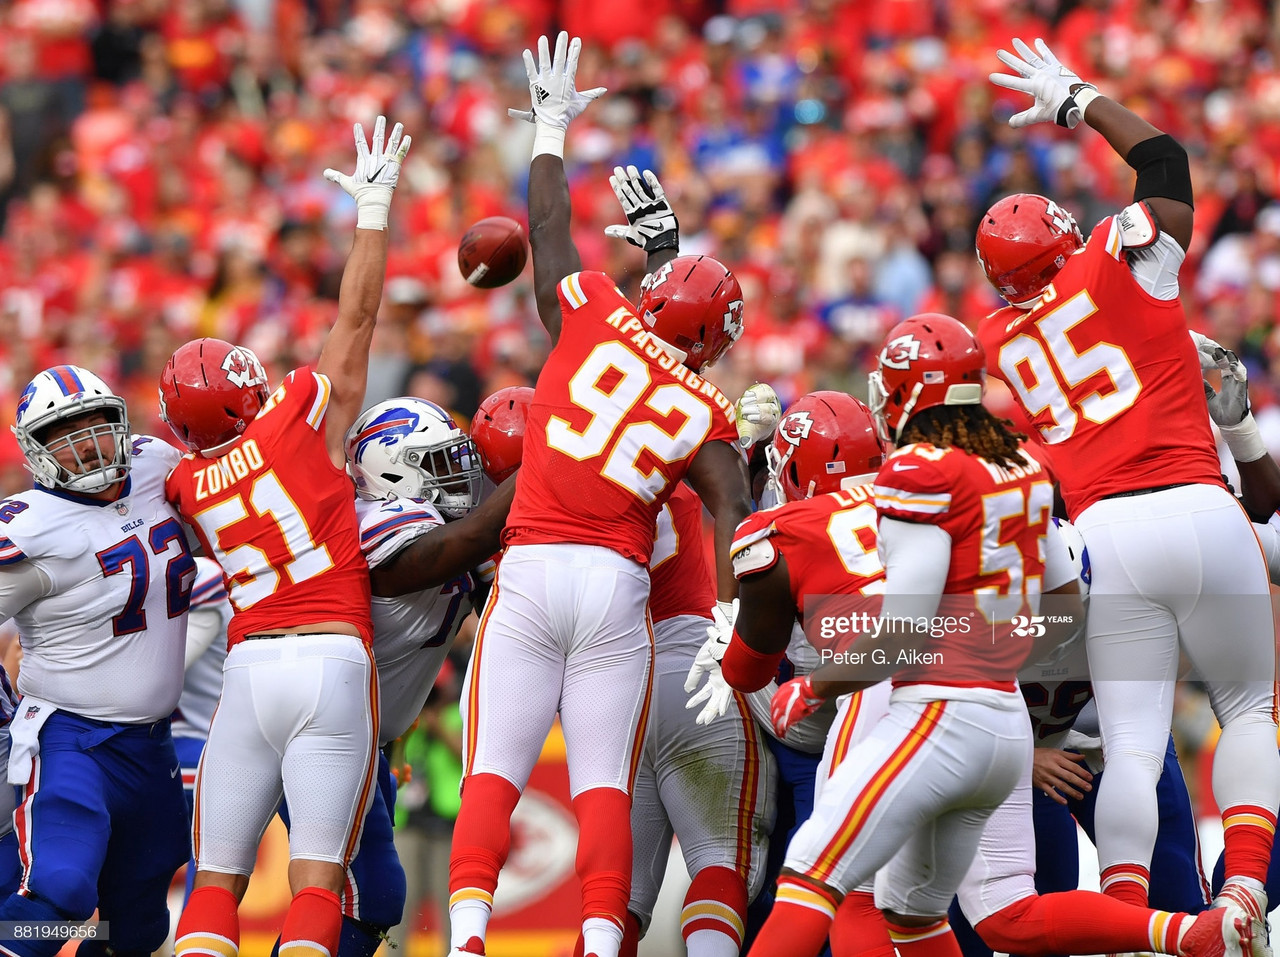 Kansas City Chiefs vs Buffalo Bills Monday Night Football preview